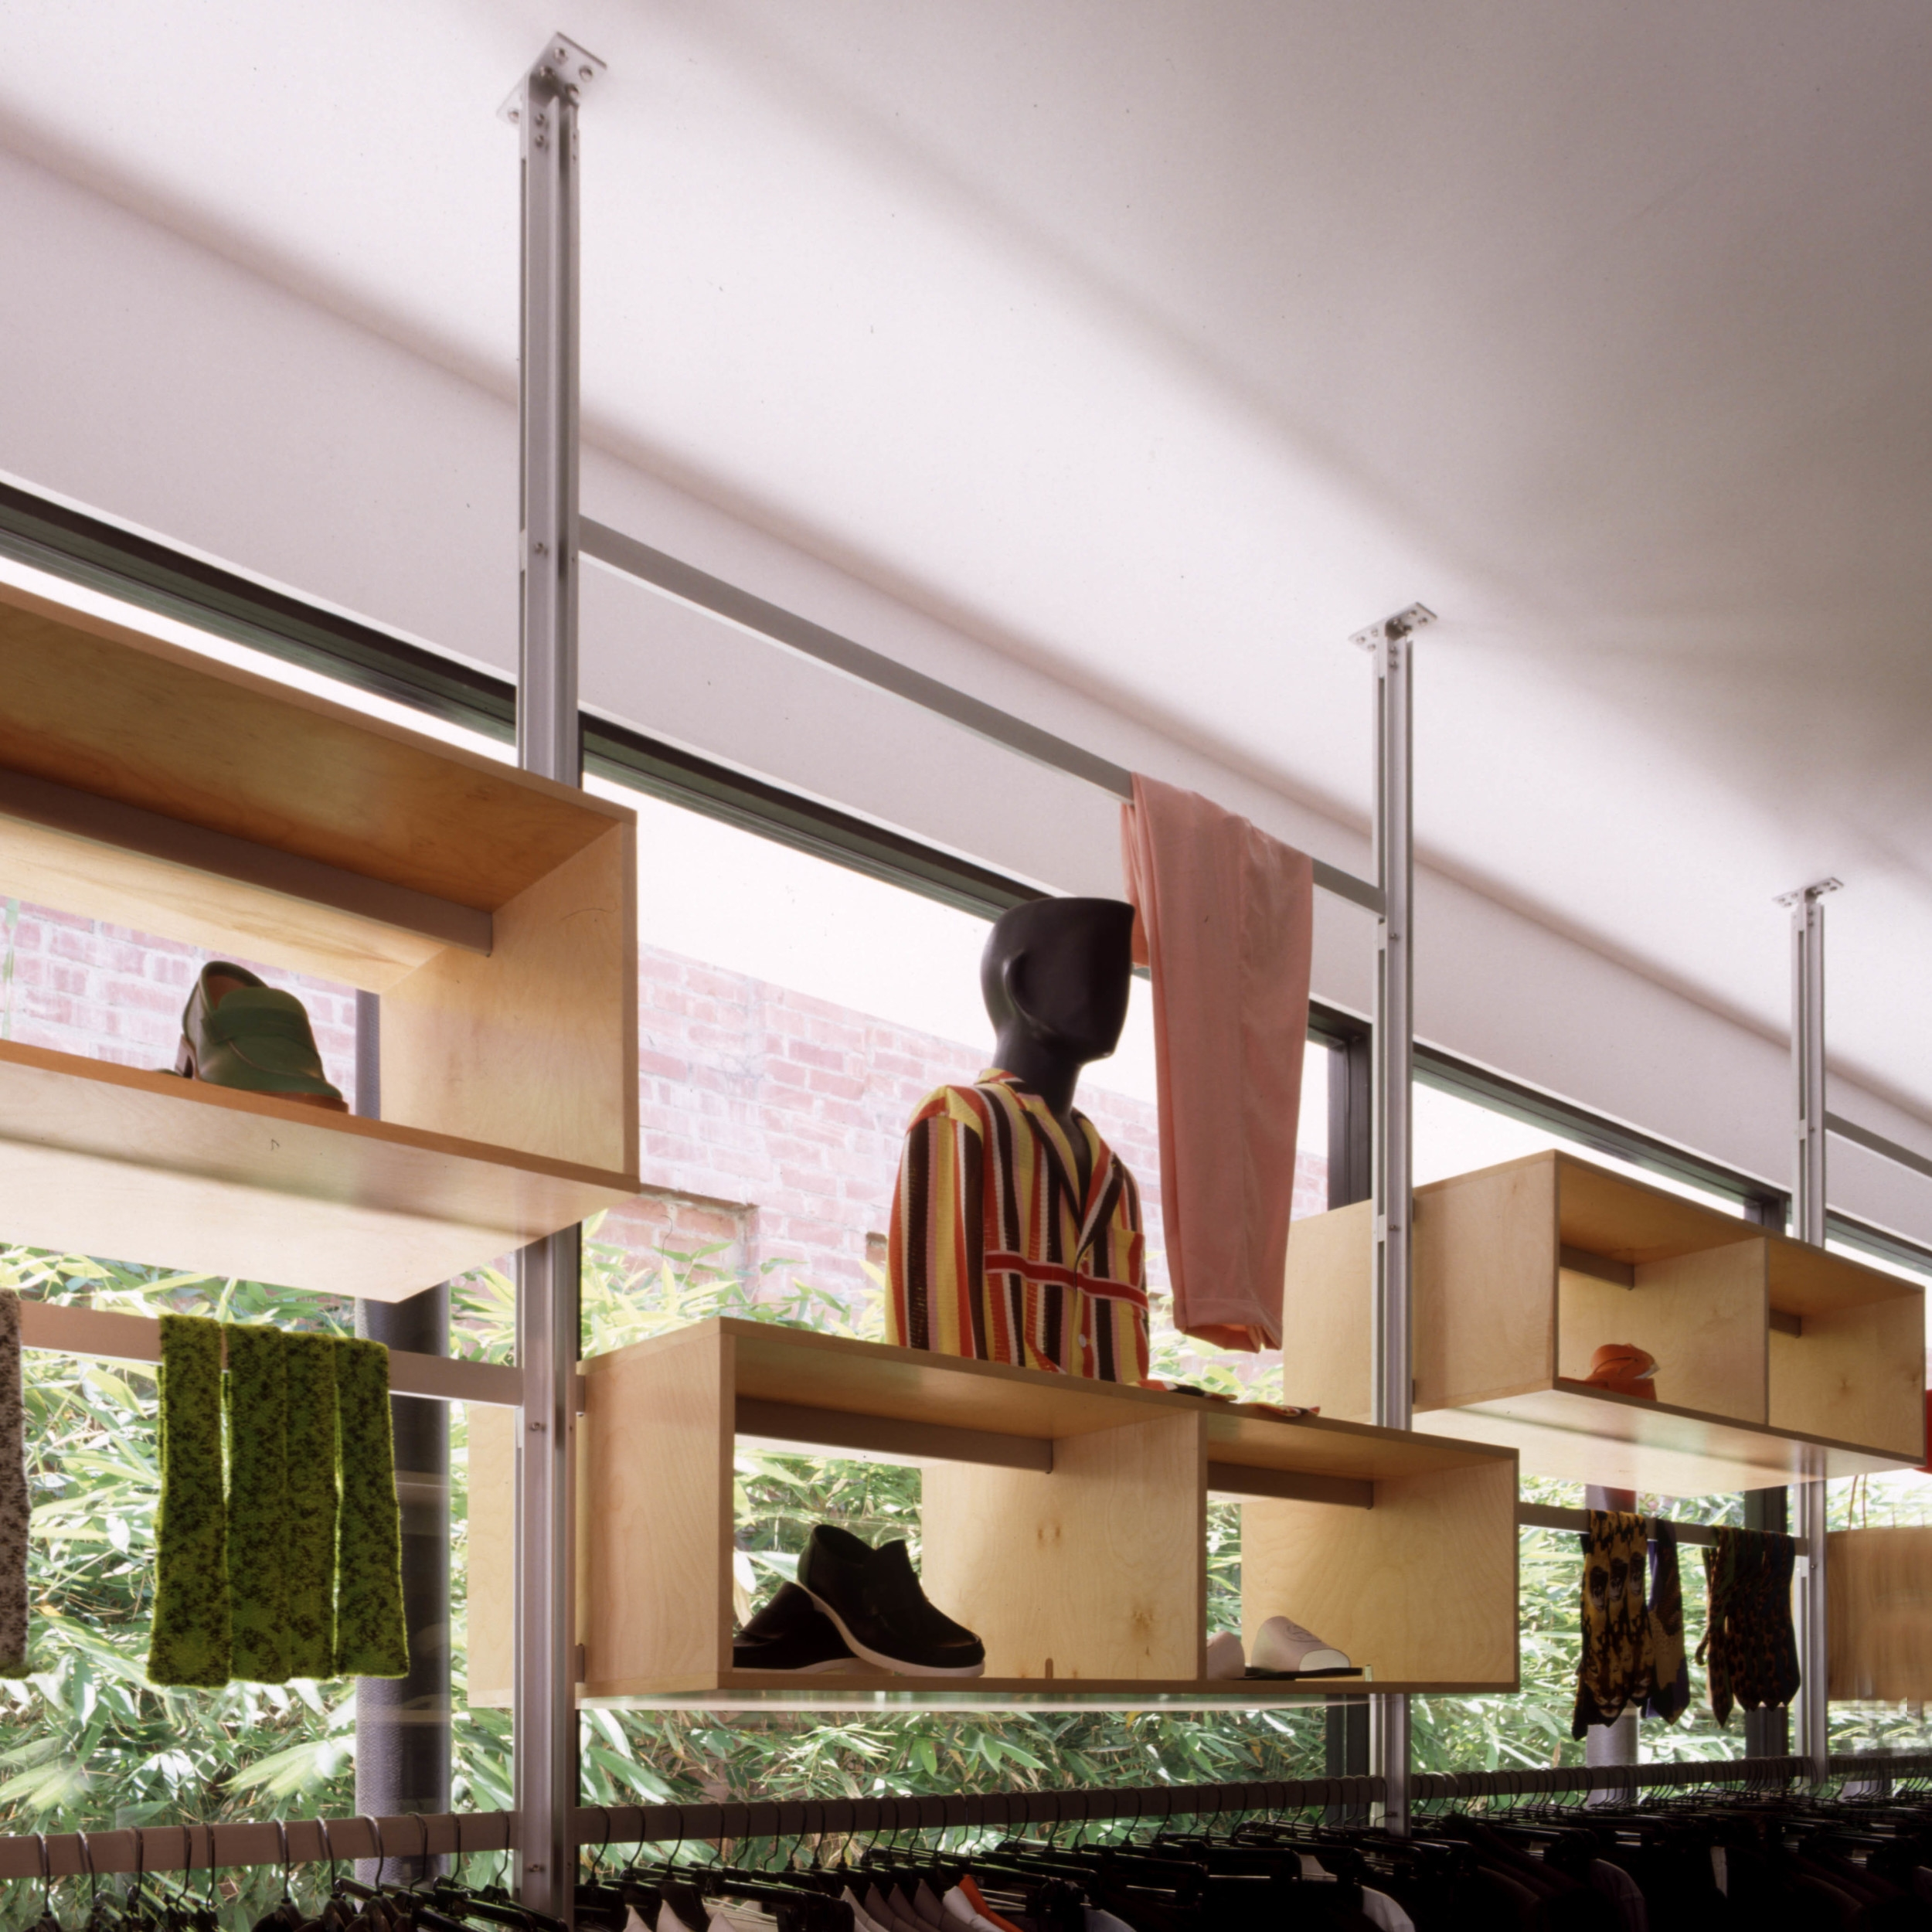 Modular Aluminum and Wood Display Fixtures at Bamboo Courtyard for Maxfield